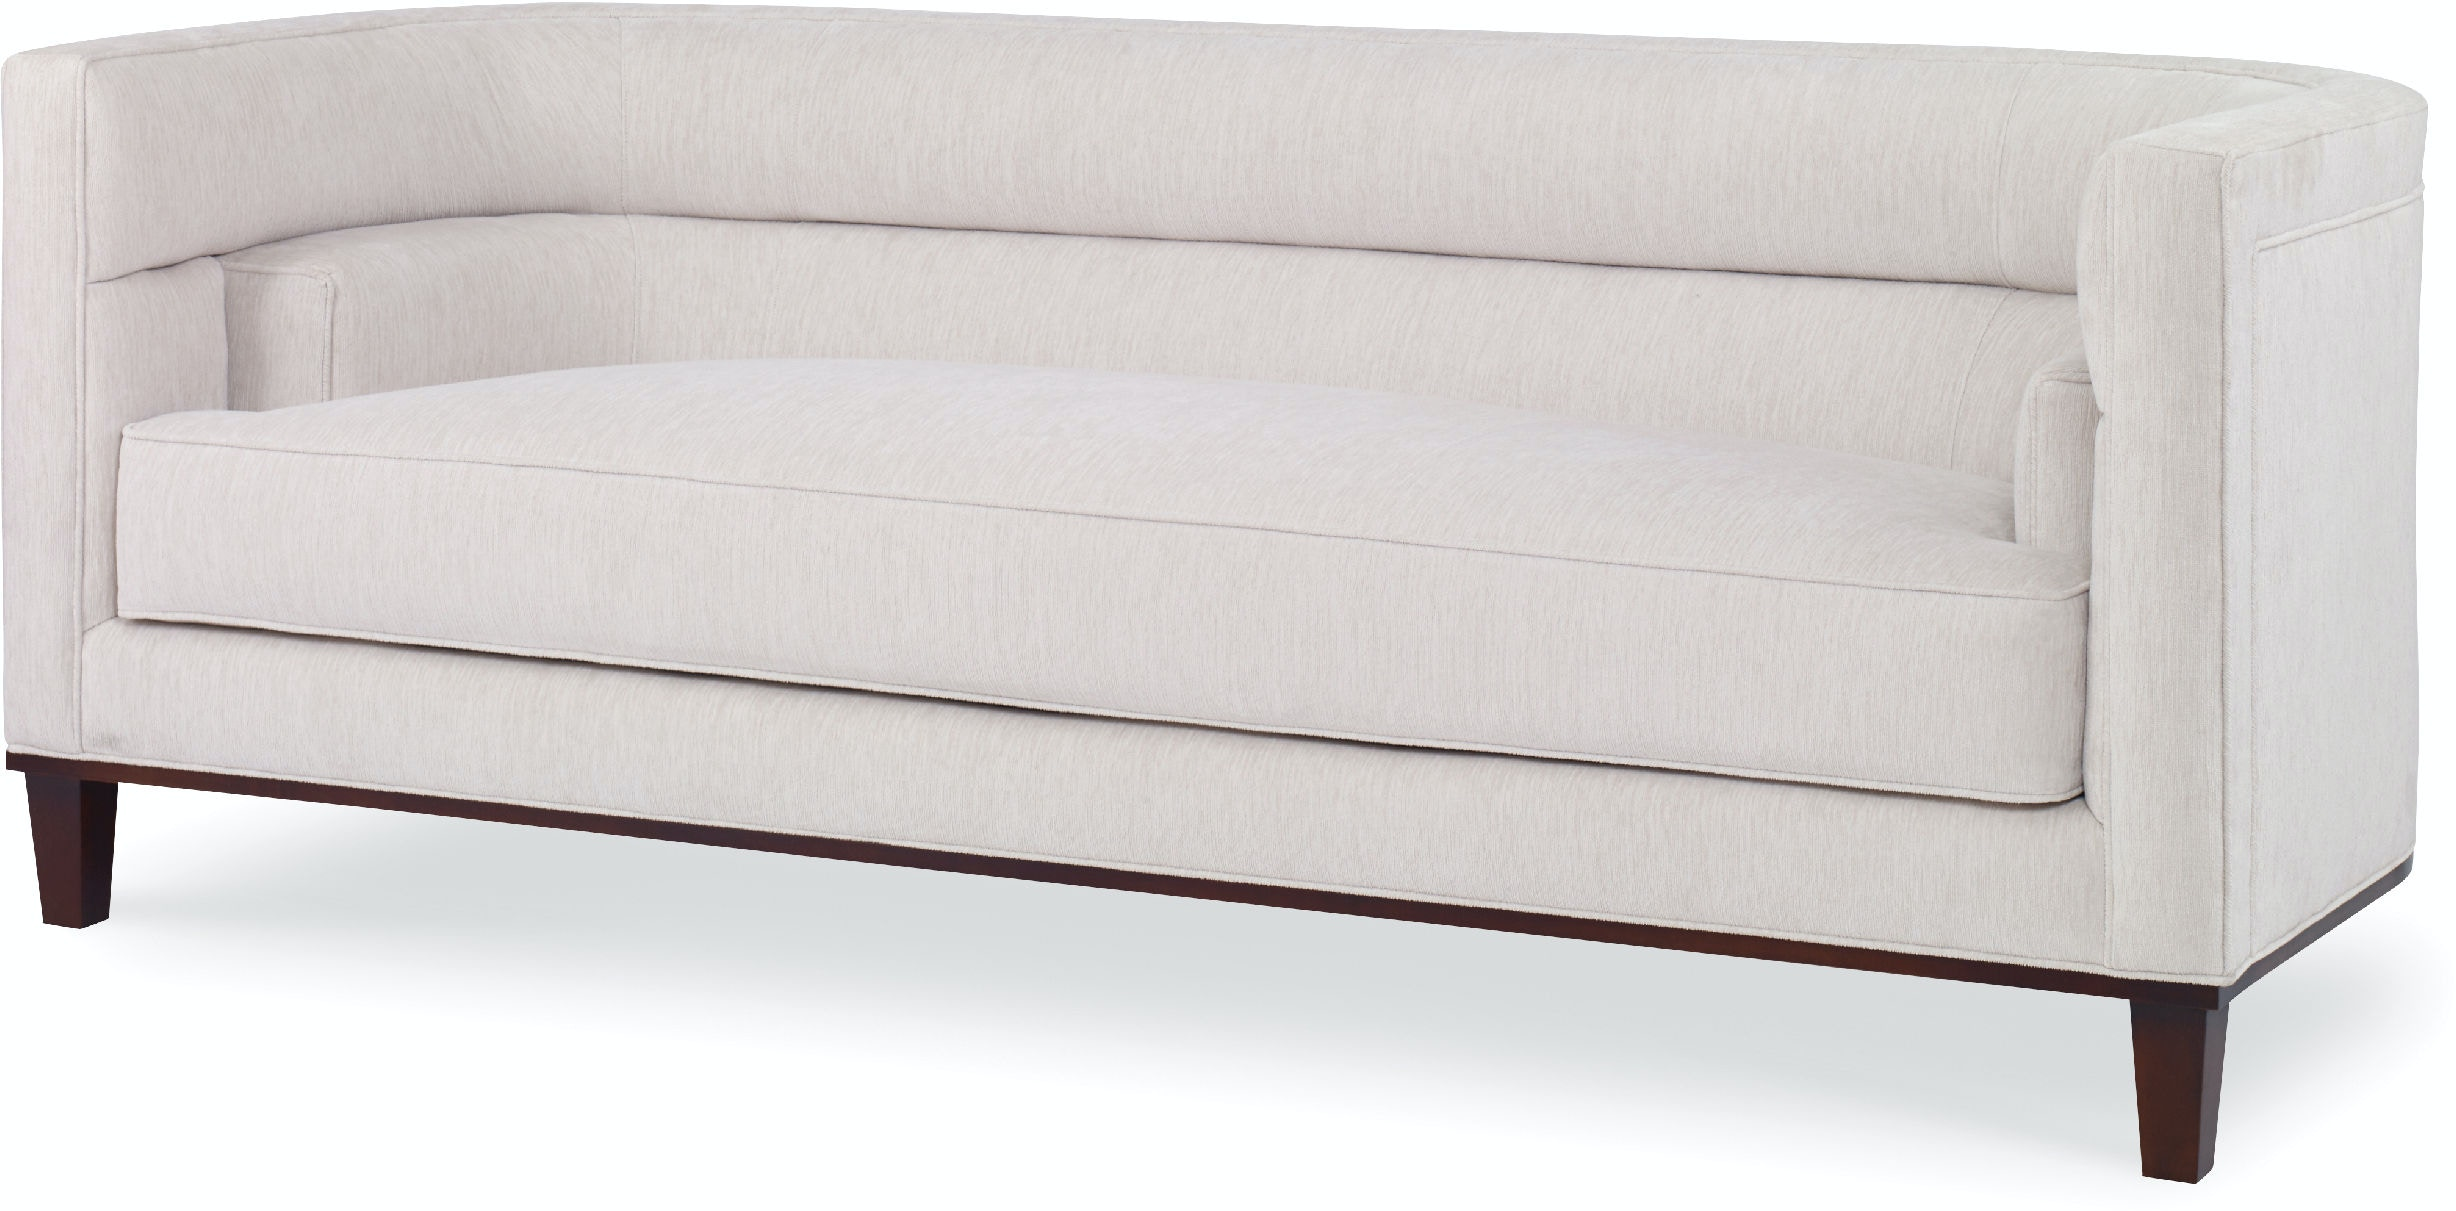 Sofas Furniture Lee Jofa New New York NY